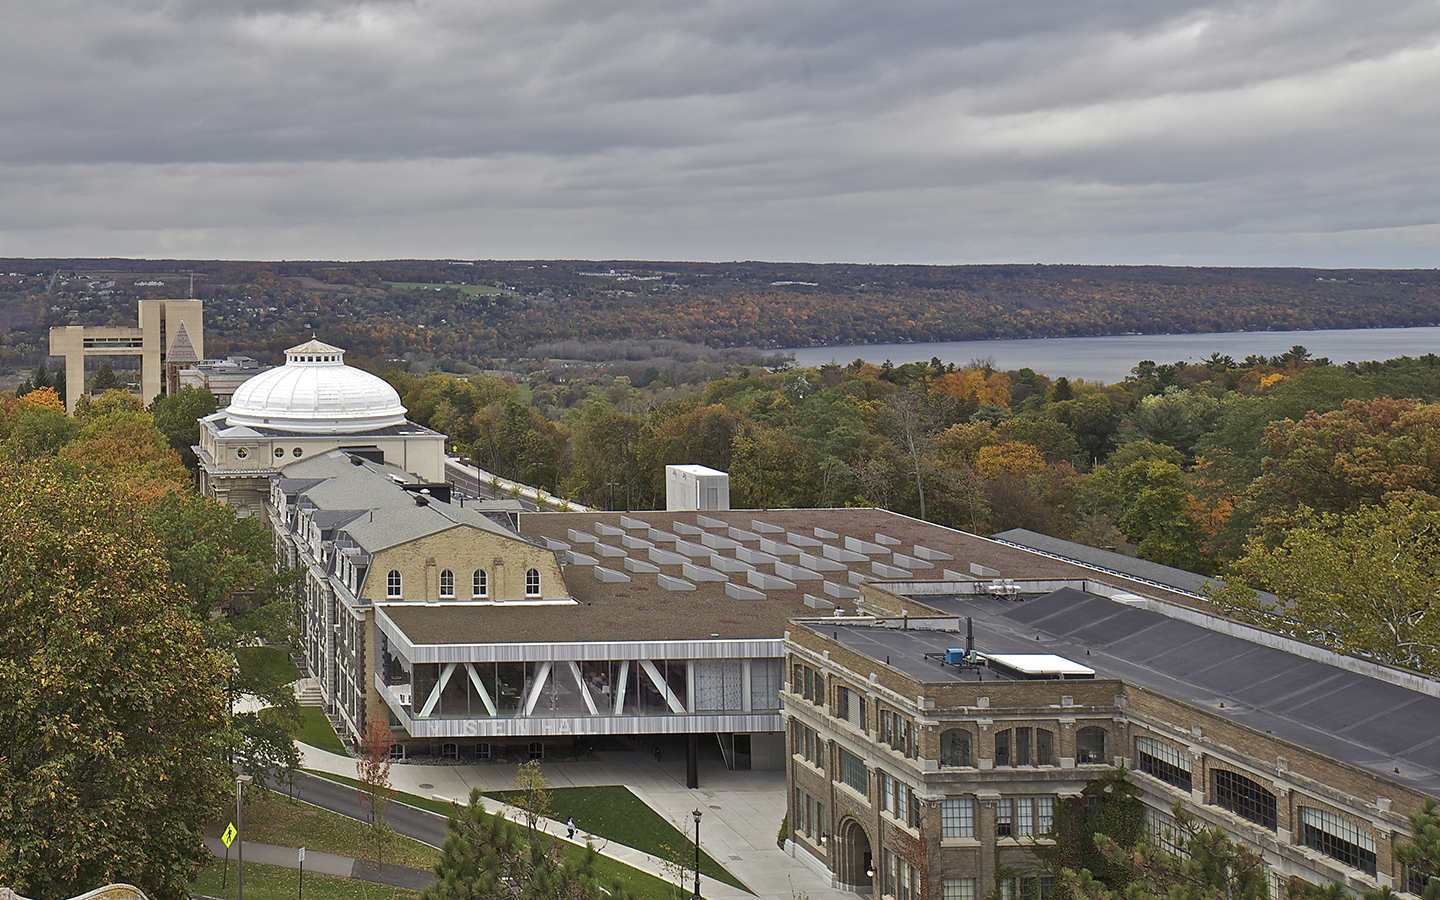 Aerial view of AAP shows Rand, Milstein, Sibley, and Tjaden halls, and includes the Herbert F. Johnson Museum of Art and Cayuga Lake in the background.